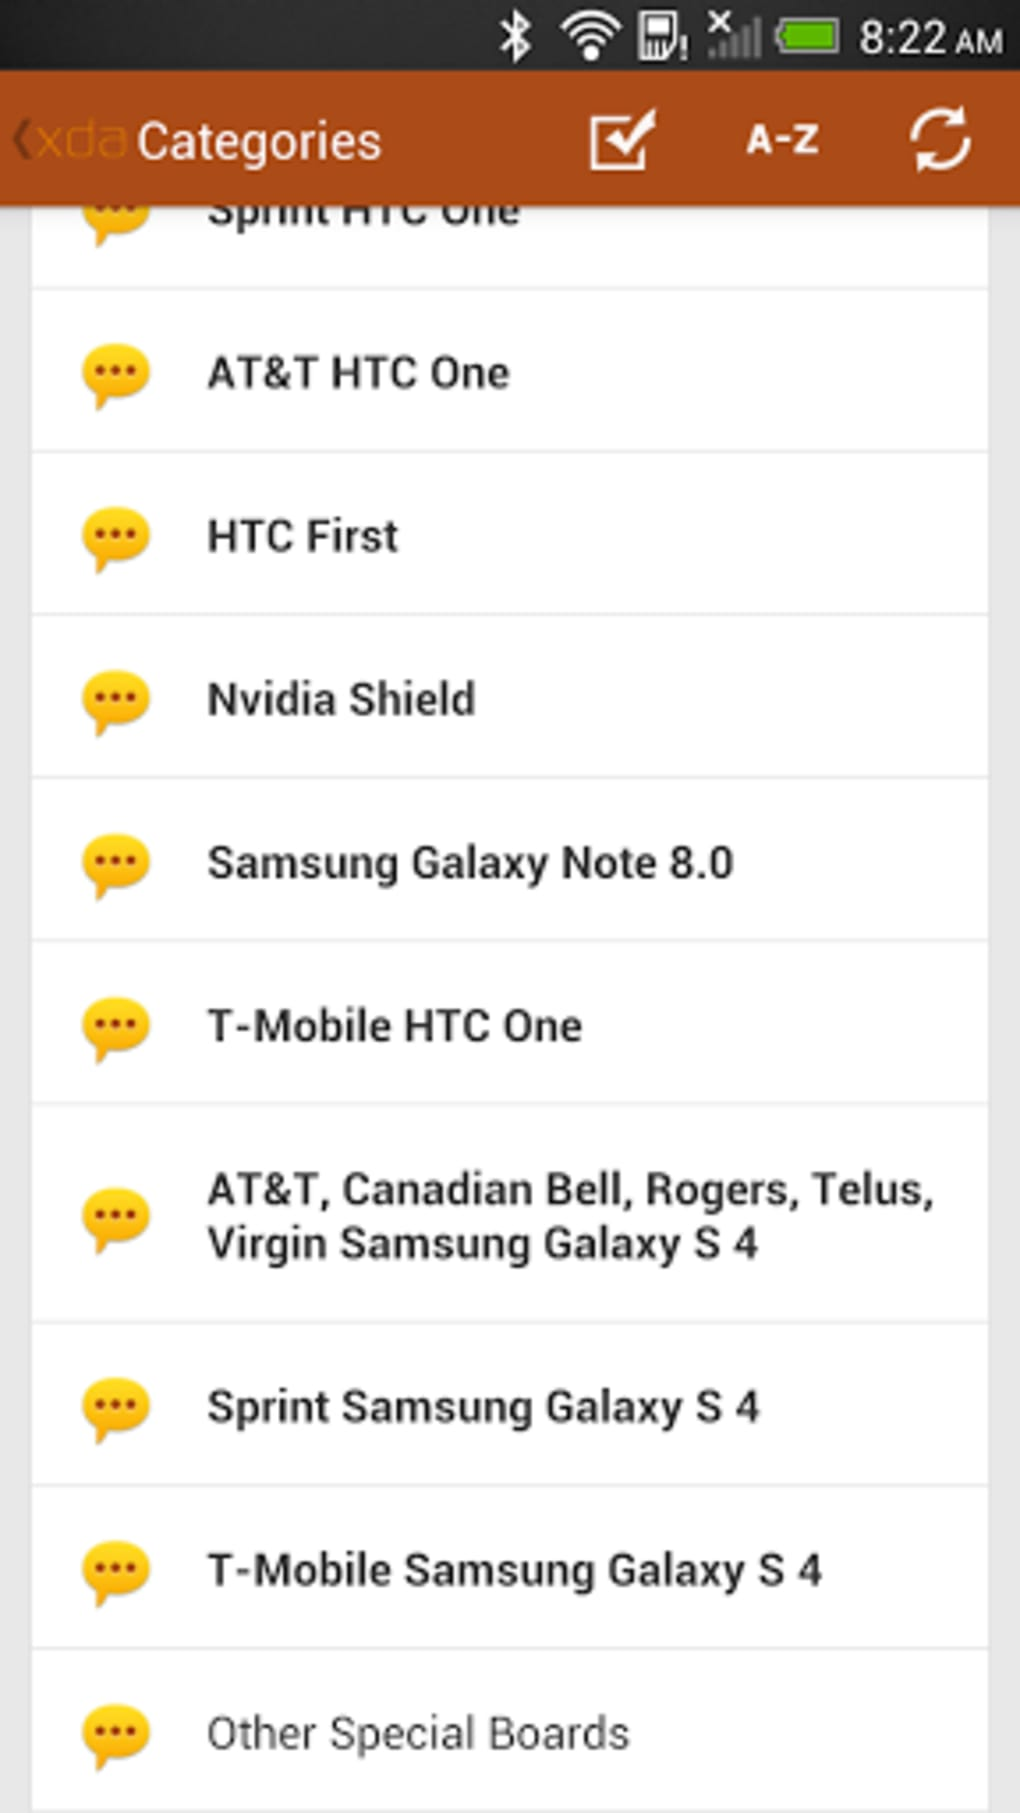 XDA Premium for Android - Download